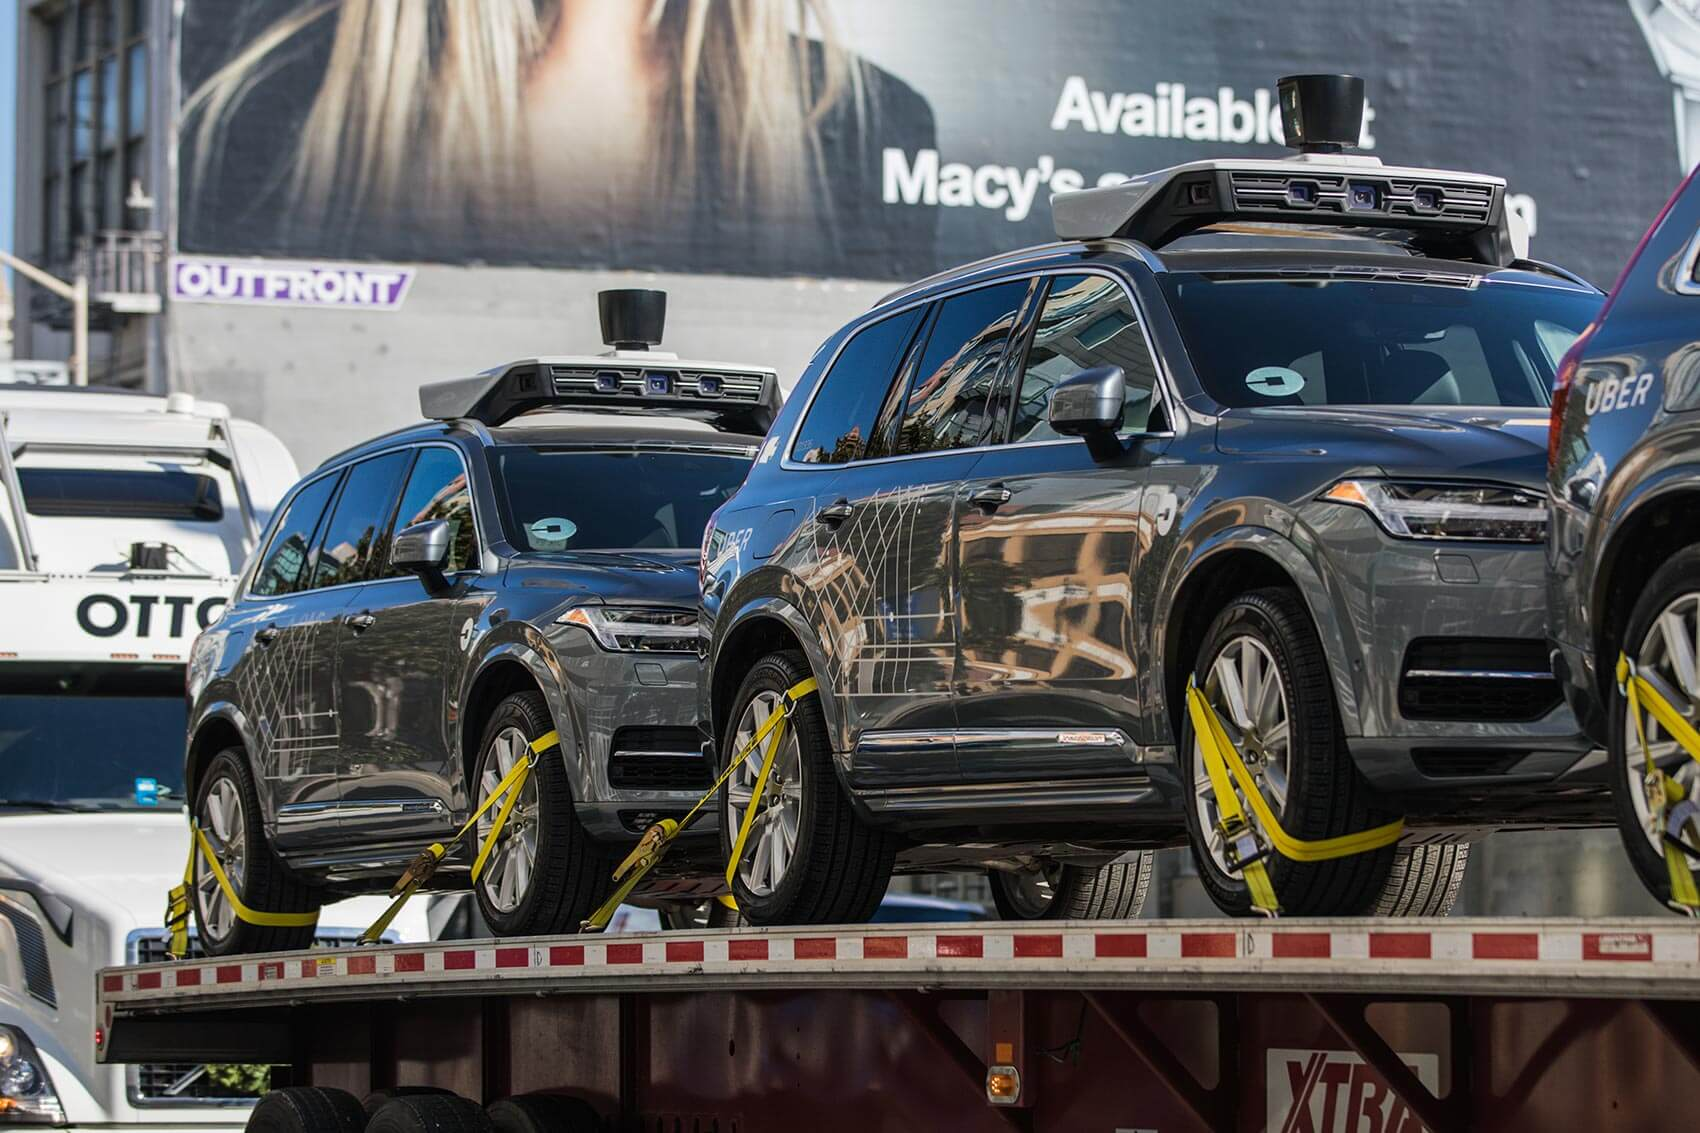 Uber ships its self-driving cars to Arizona after being blocked by California's Department of Motor Vehicles.